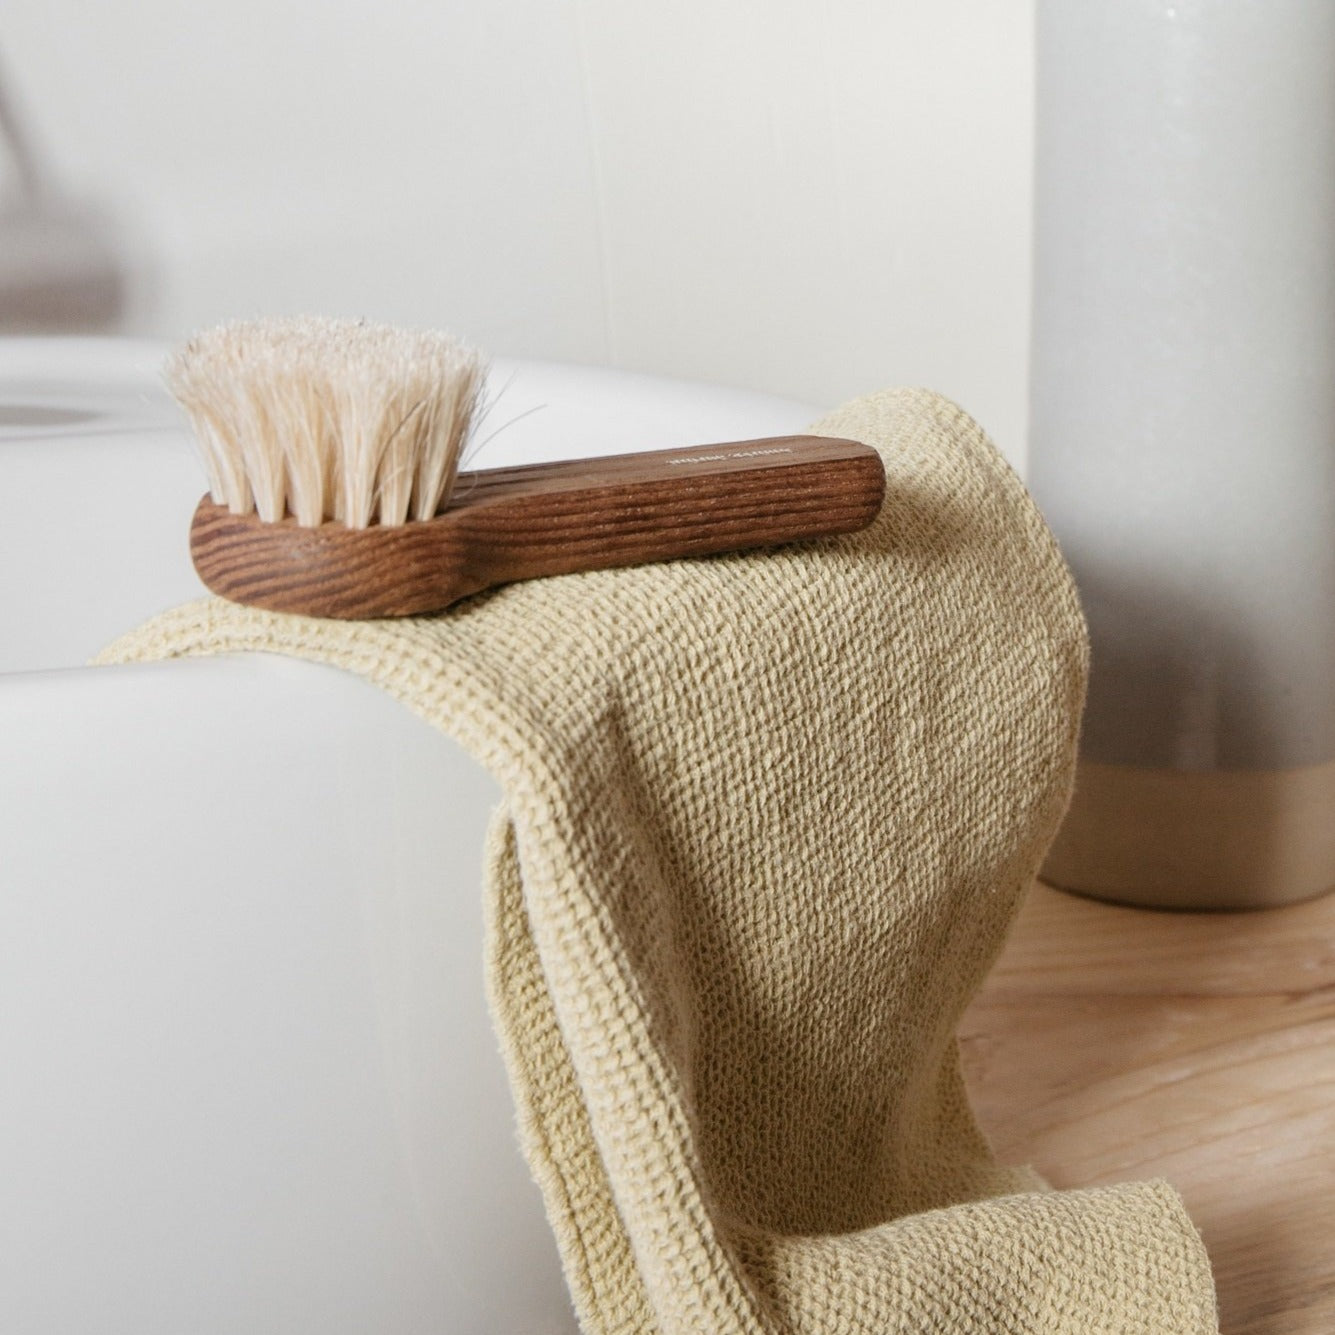 Heritage Face Cleansing Brush- Ash Wood